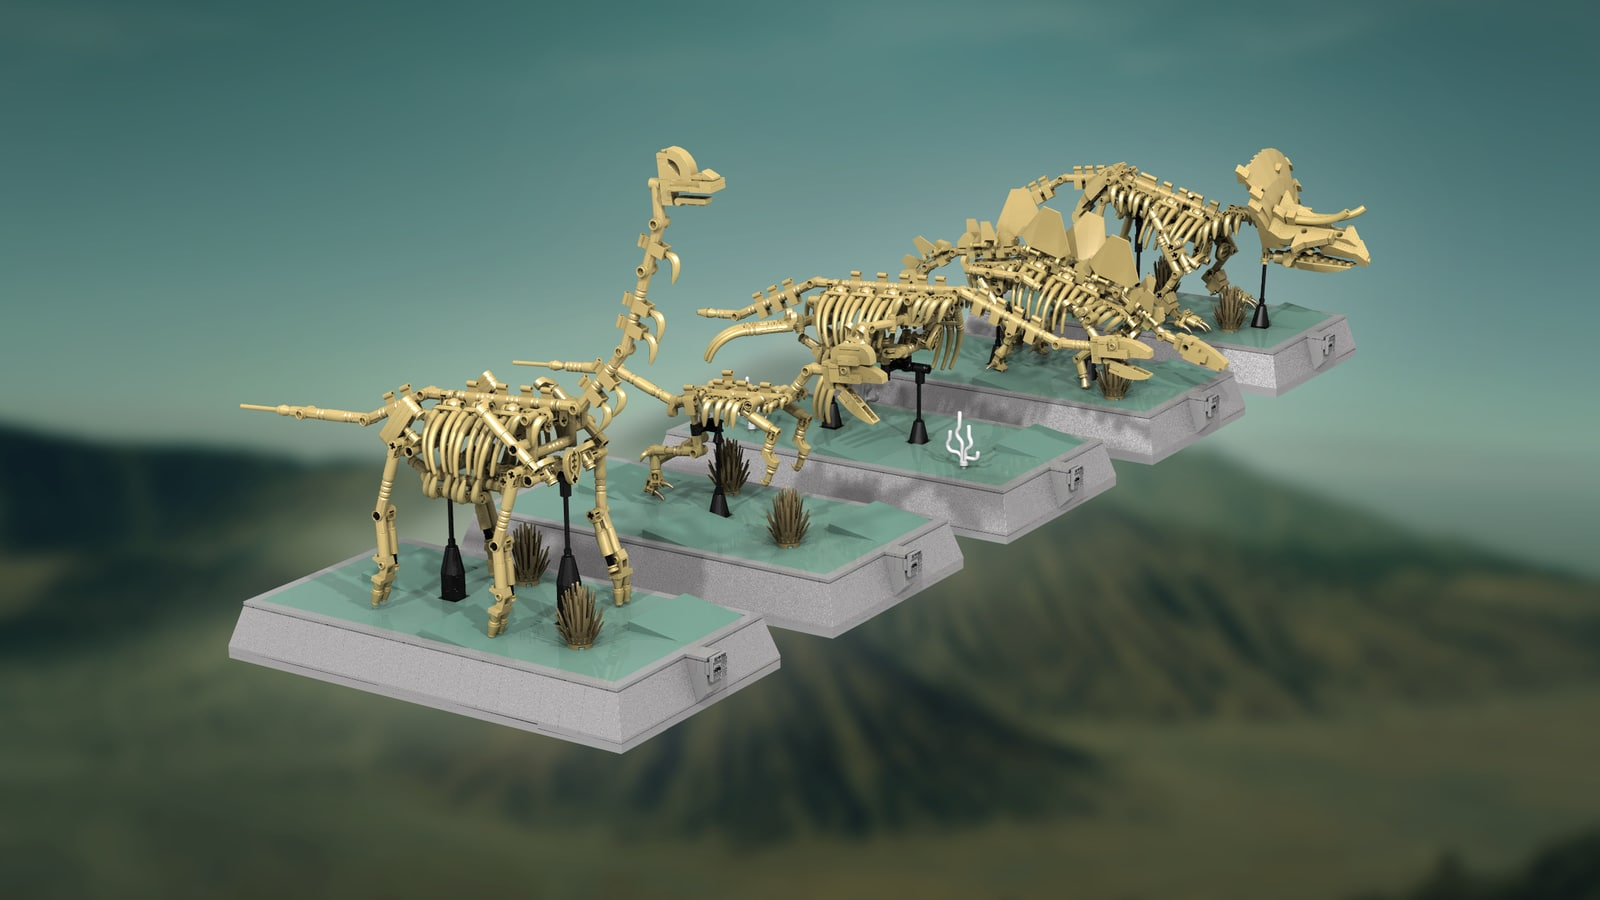 LEGO Ideas Fossile Dinosaurier-Skelette